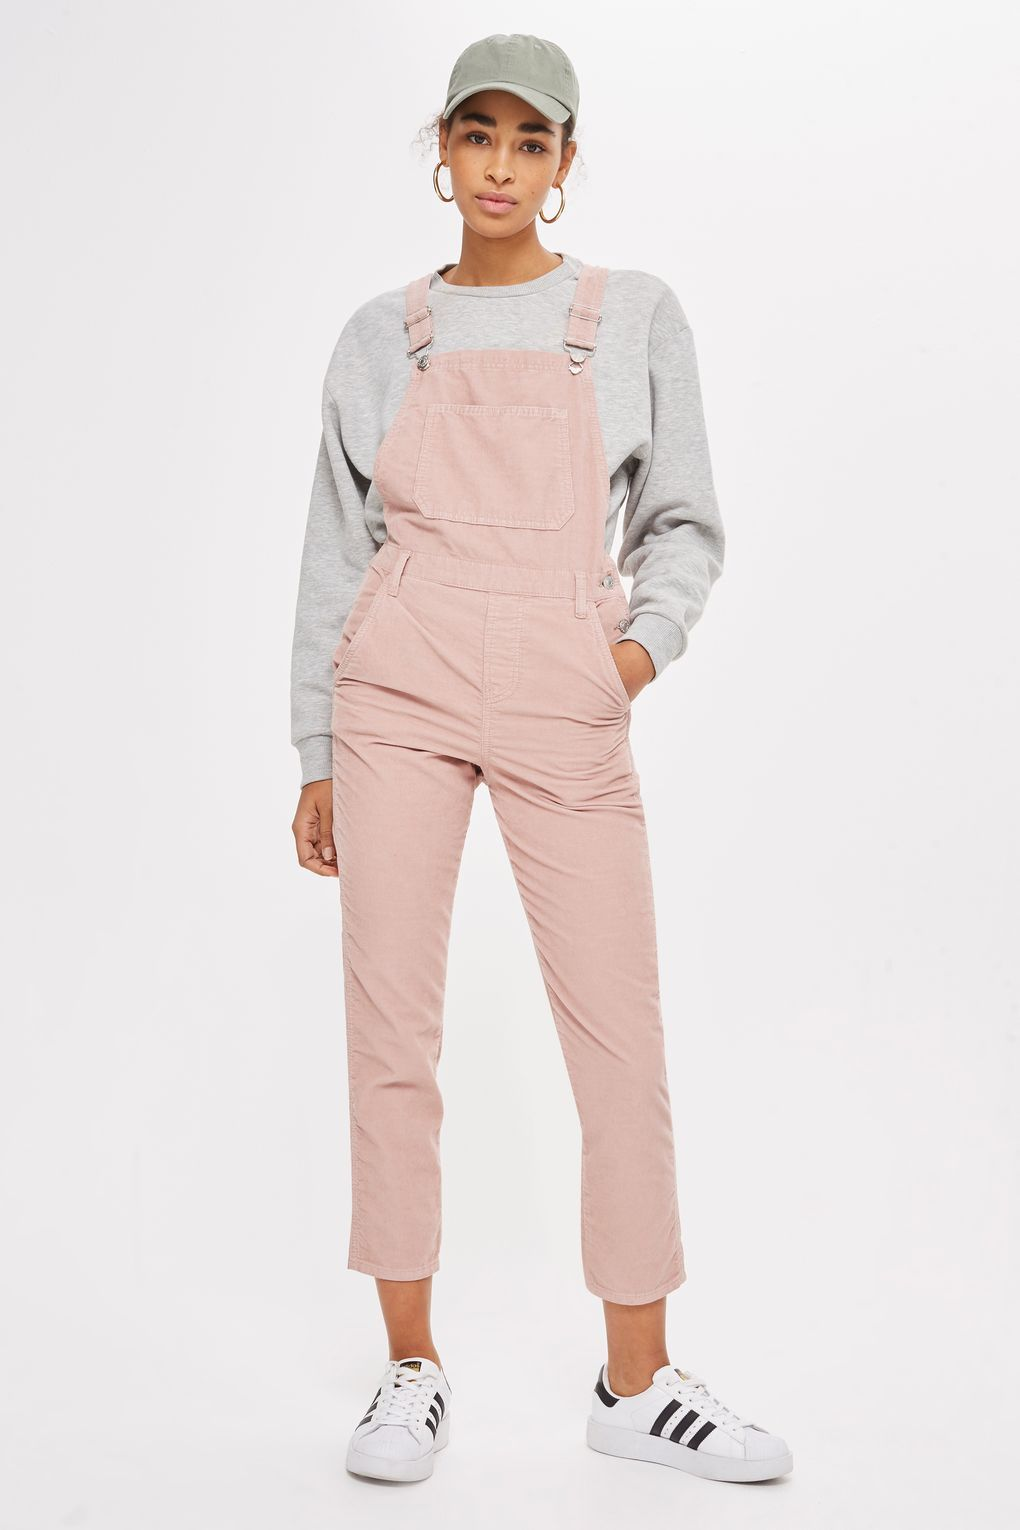 MOTO Pink Cord Slim Leg Dungarees - New In Fashion - New In ...